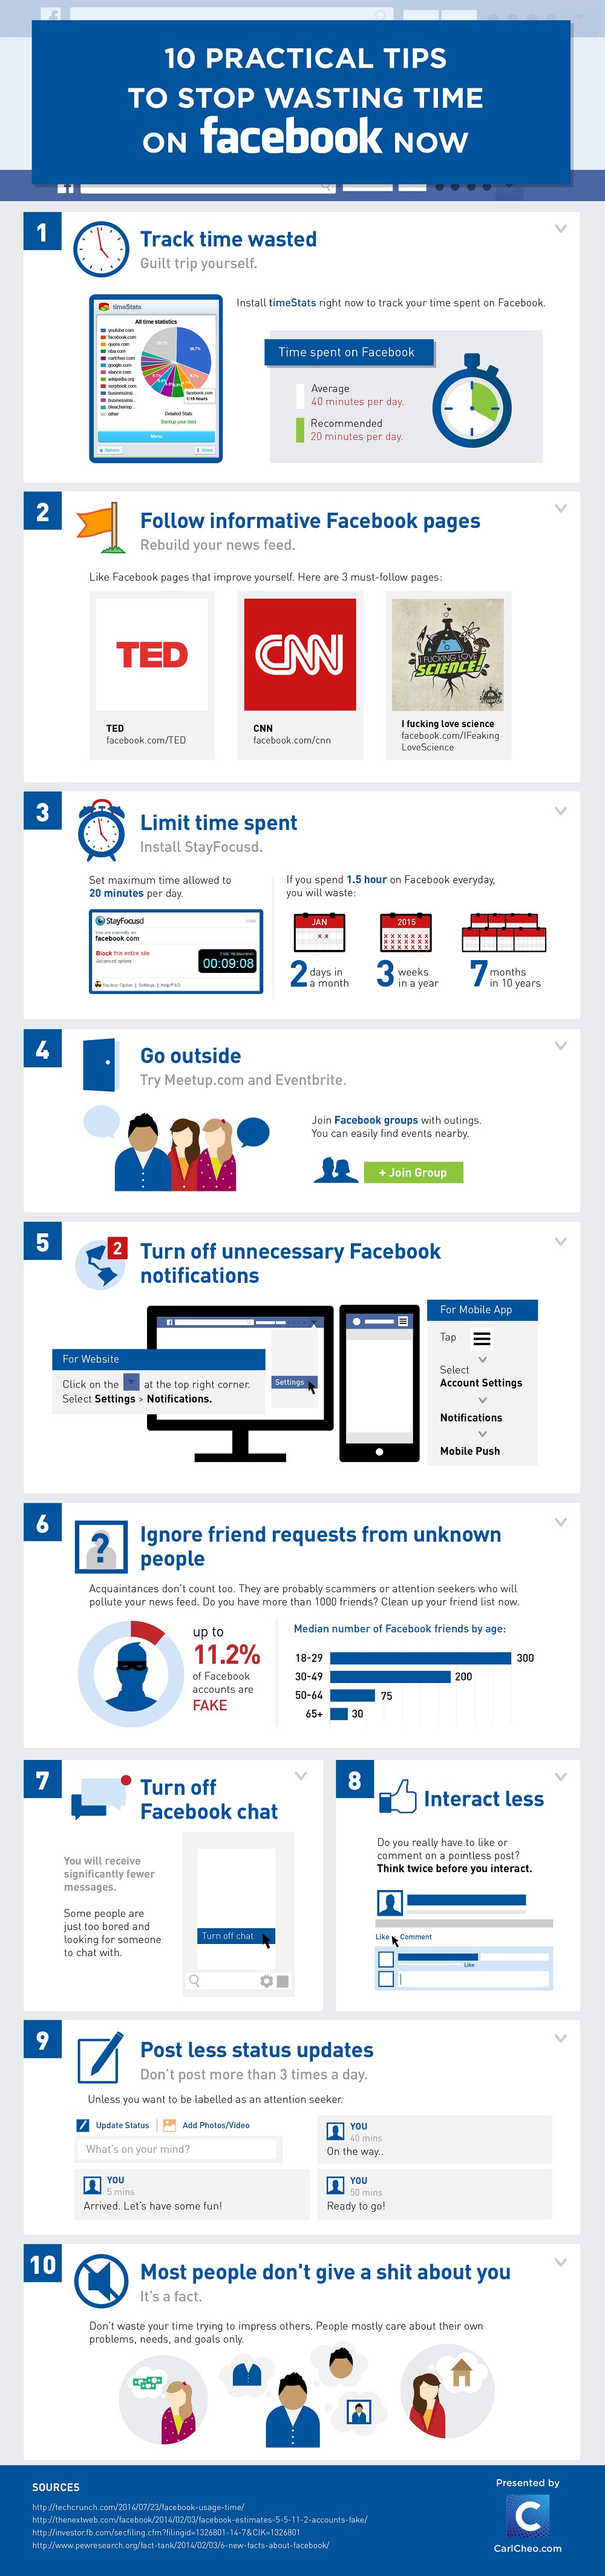 Infographic: 10 Practical Tips To Stop Wasting Time on Facebook Now